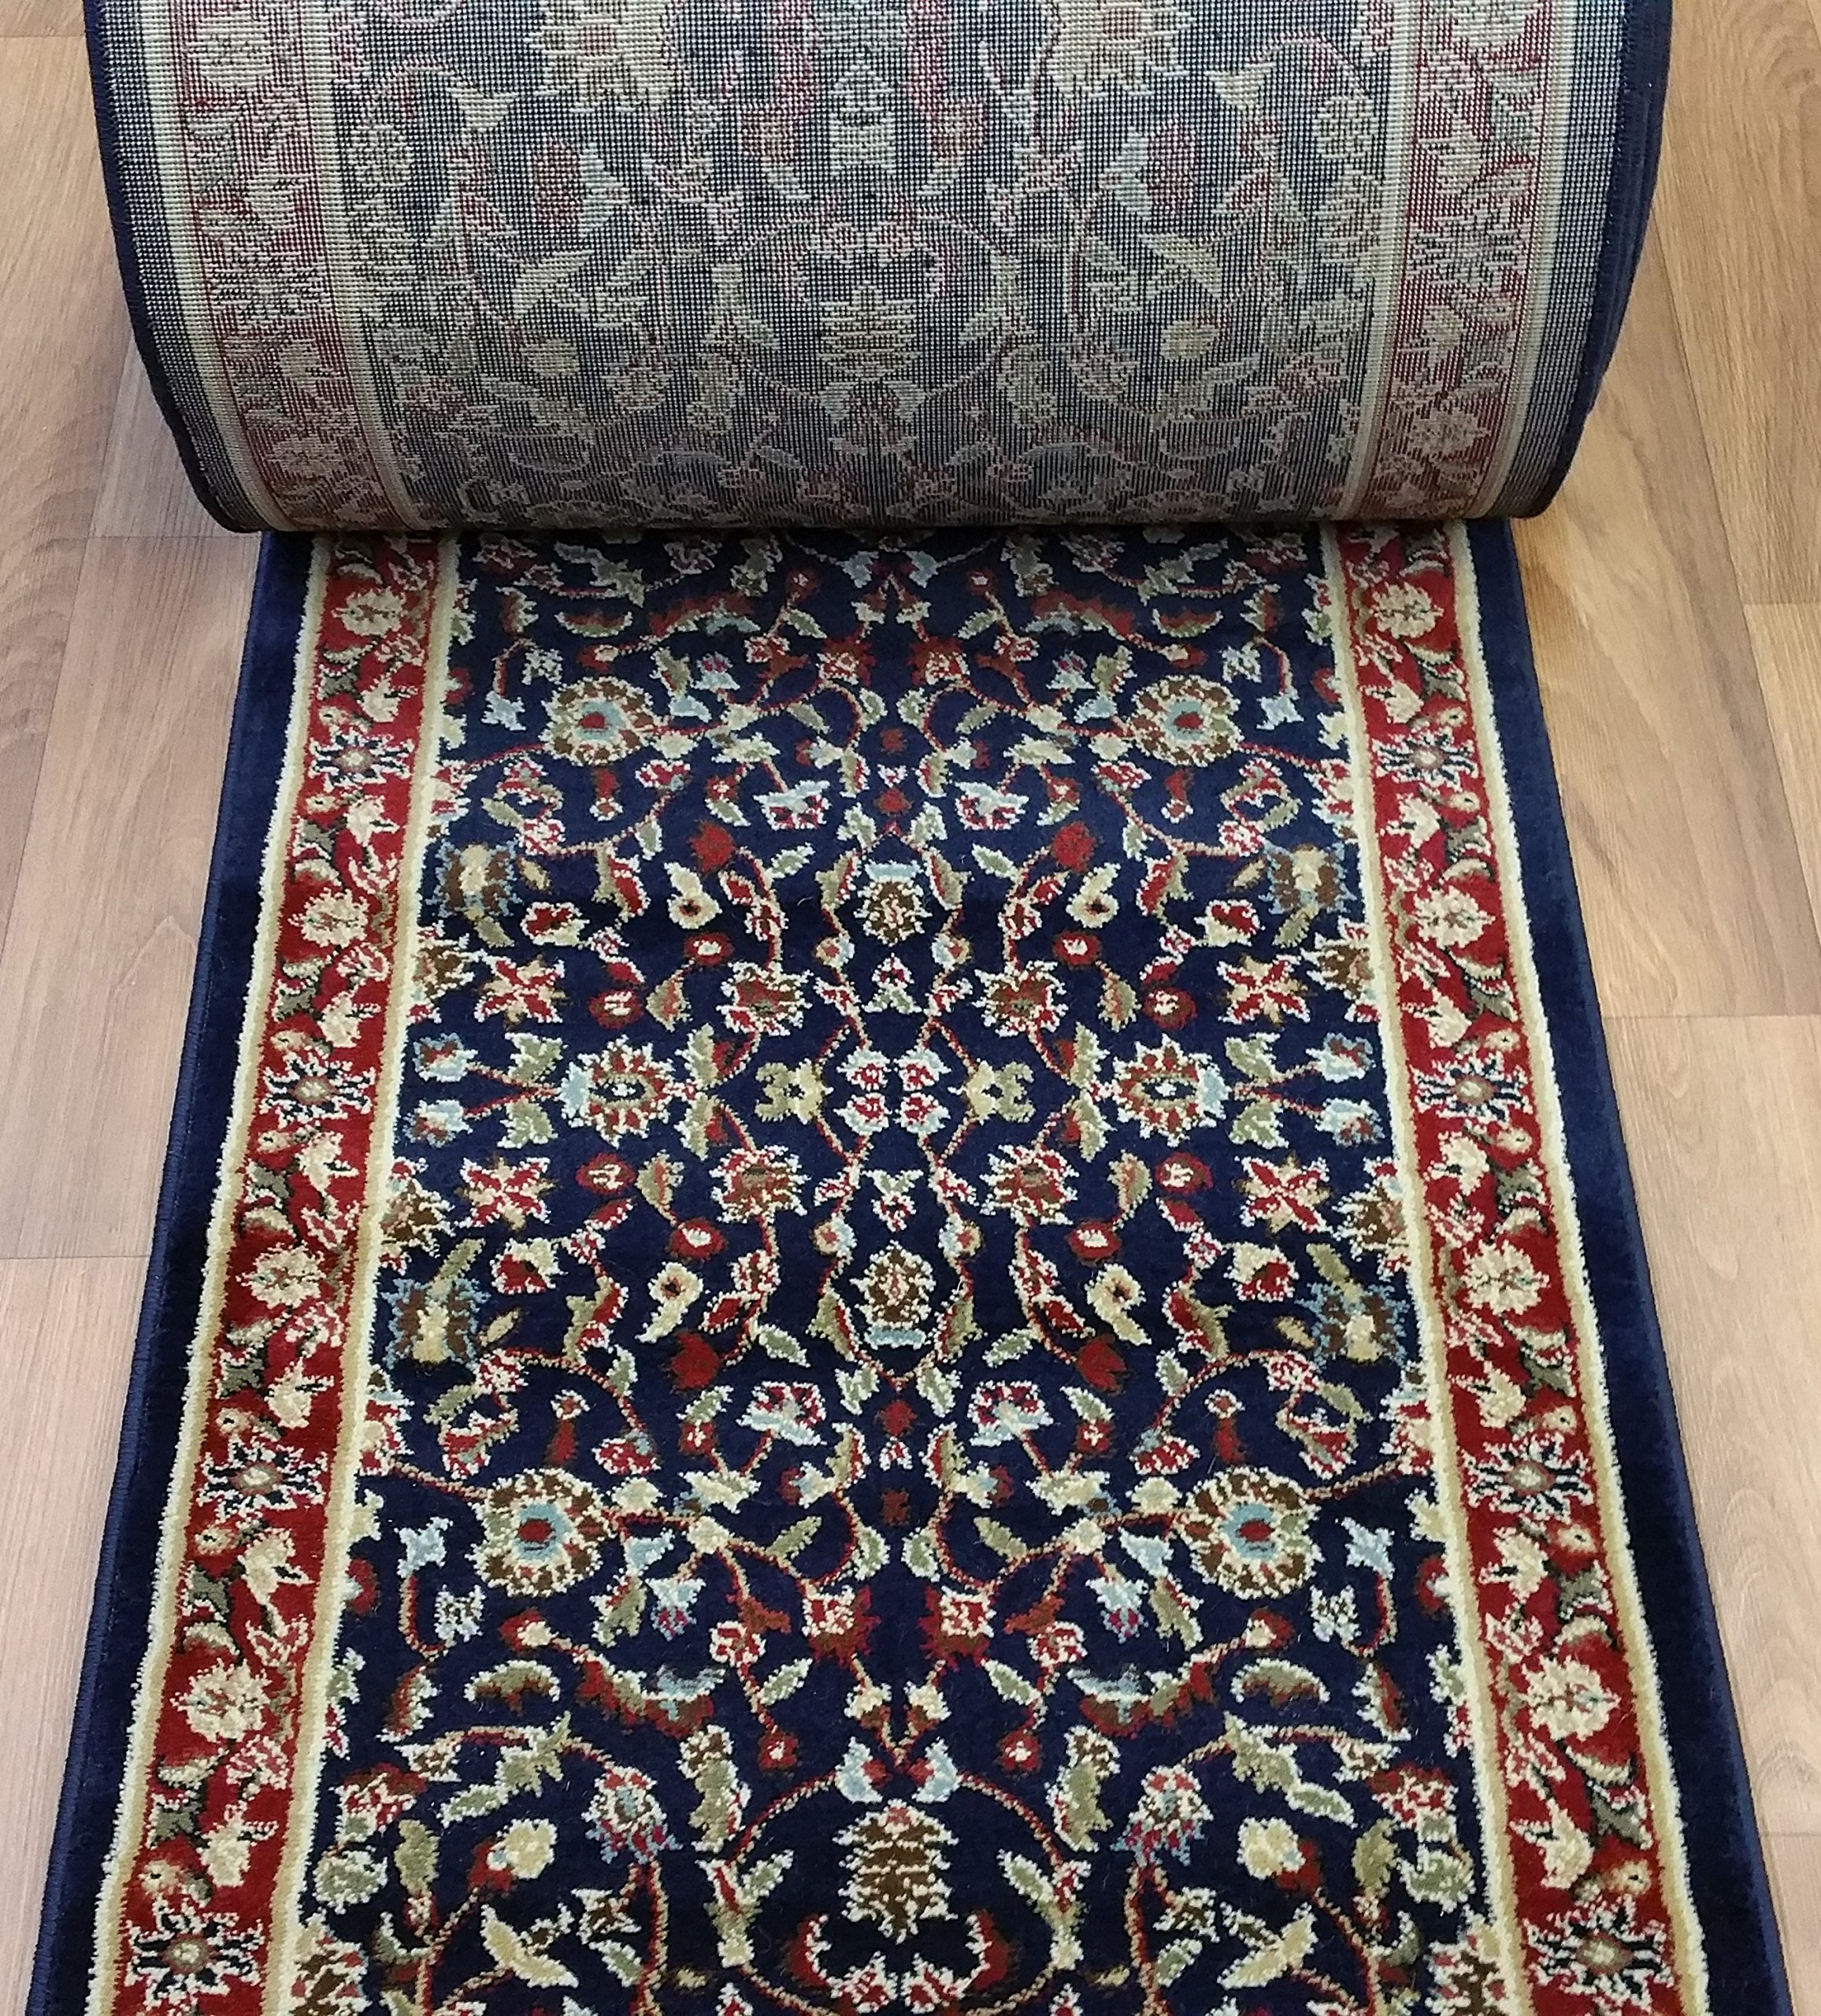 "Rug Depot 163129 Traditional Sold by The Foot Stair Runners and Hall Runners - 26"" Wide Rug Runner - Navy Blue Background - Kashan Design - 100% Polypropylene"